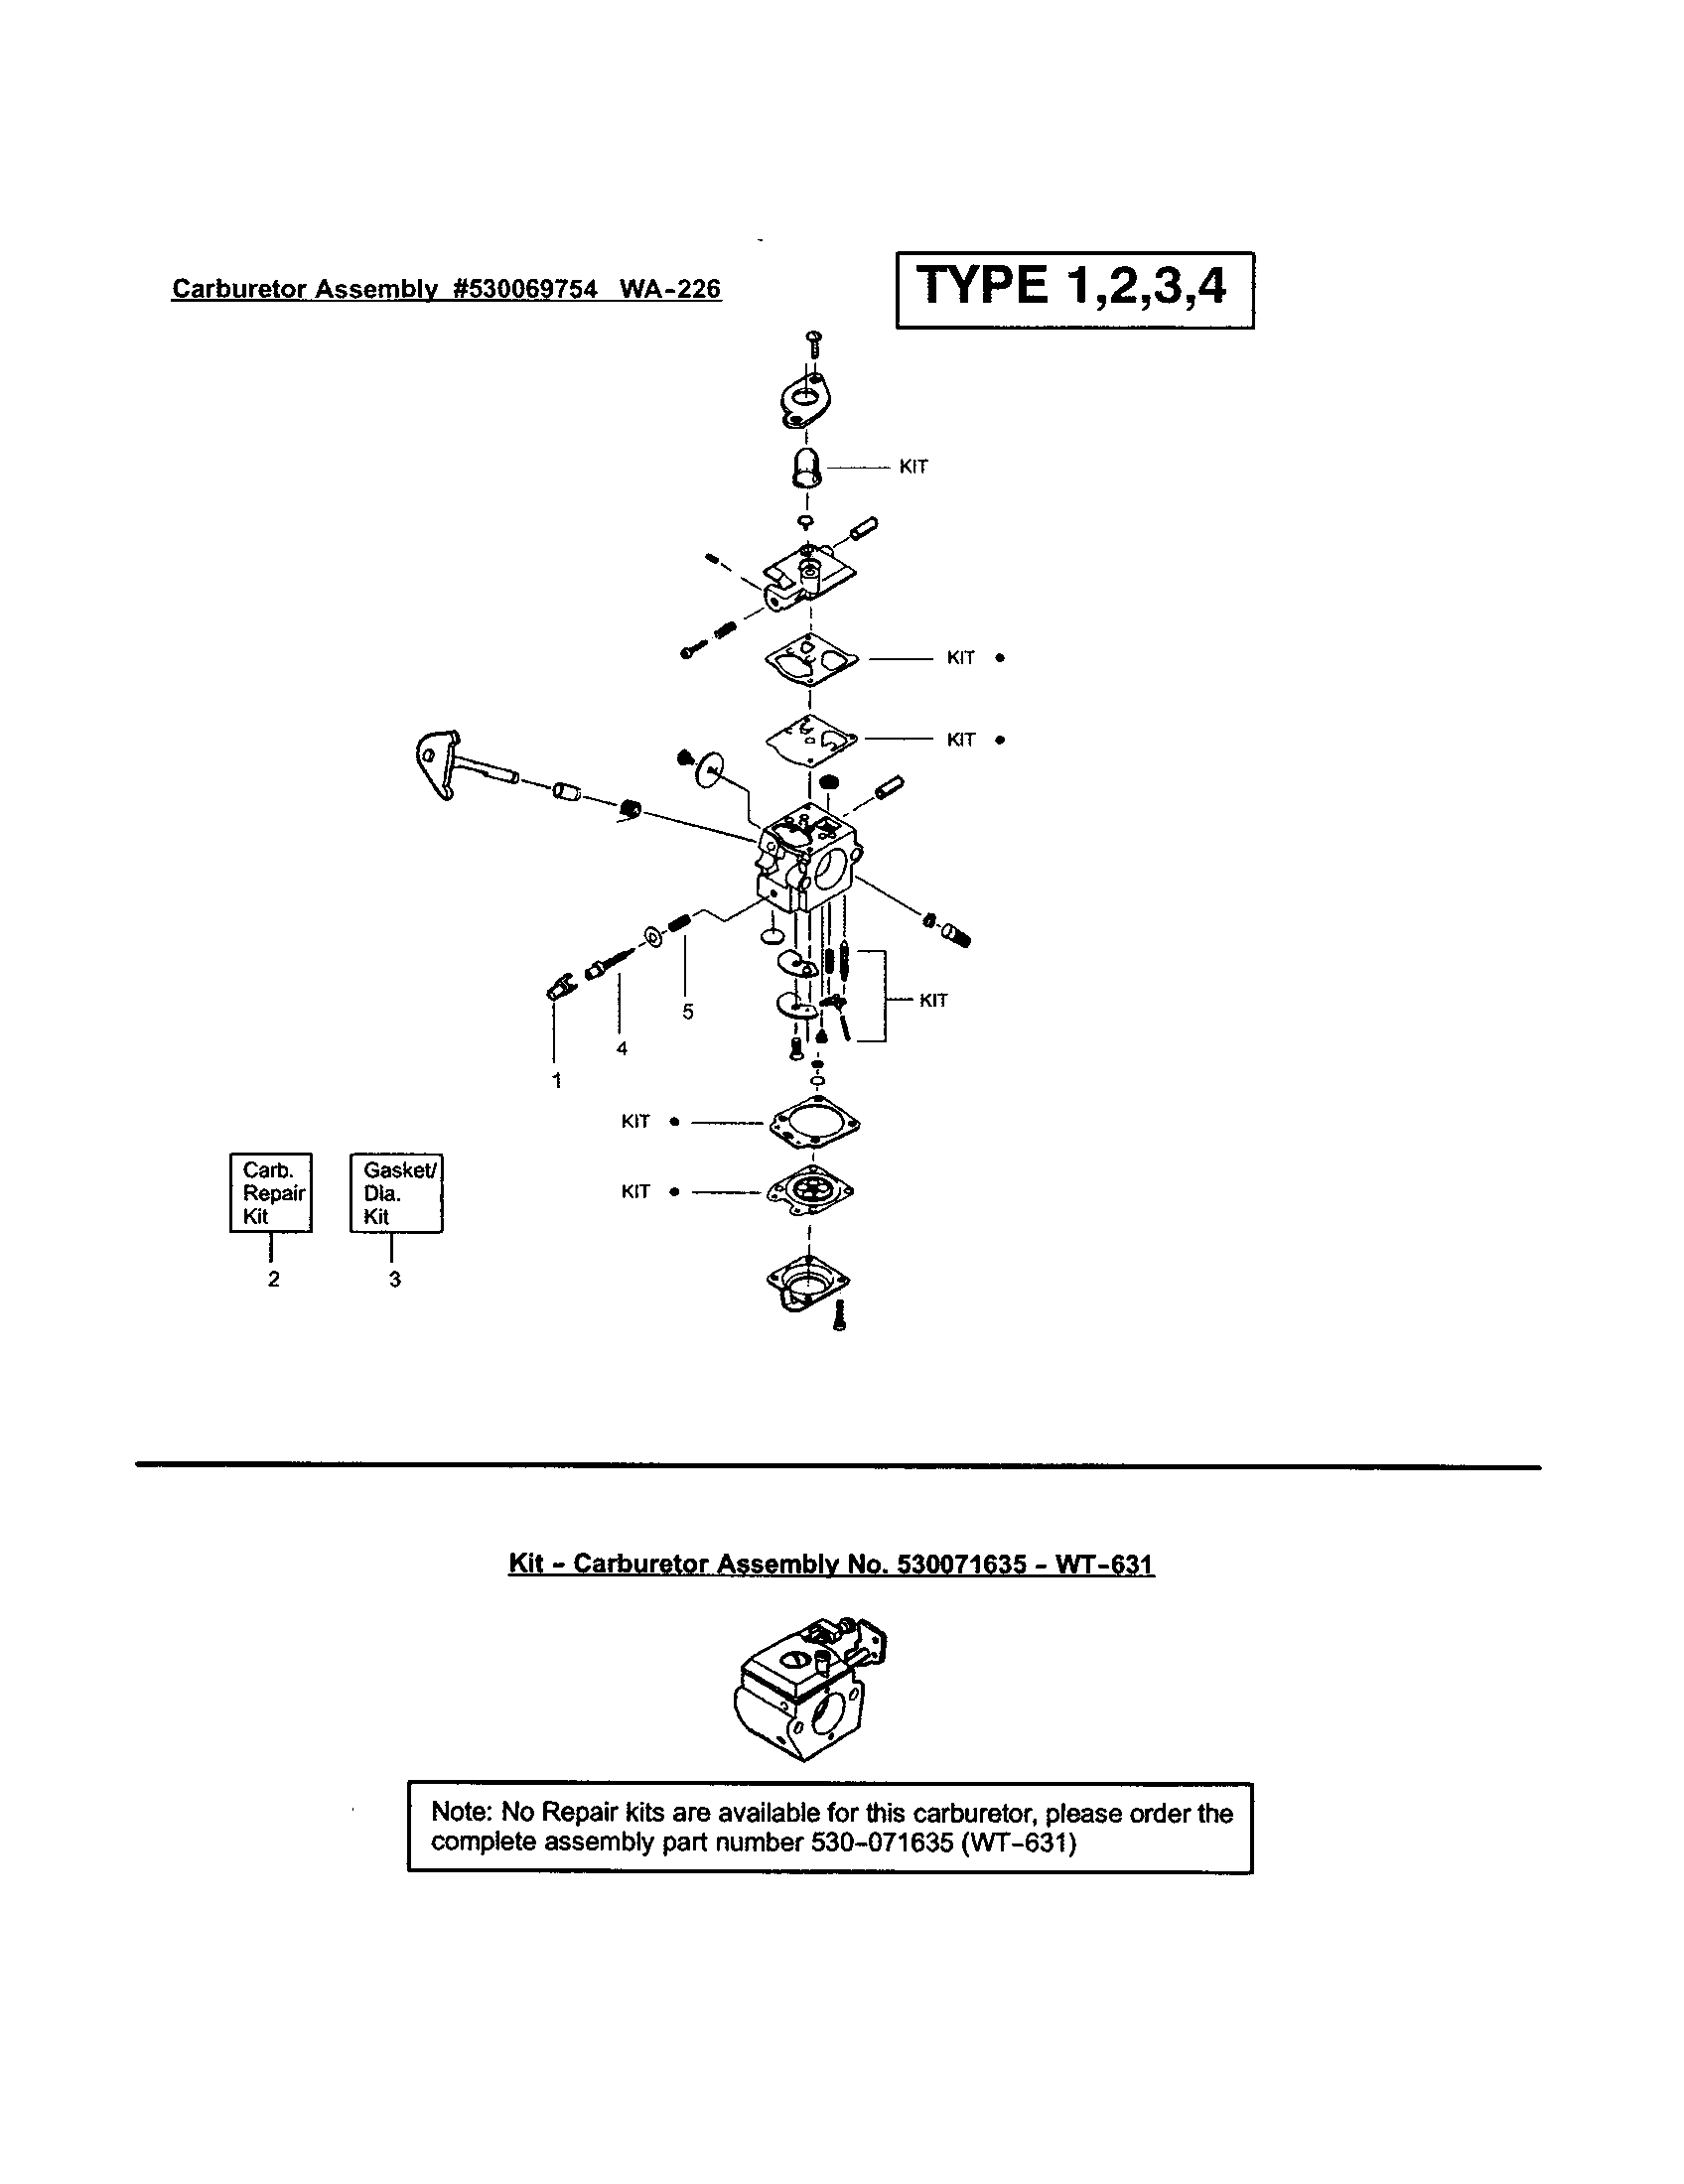 diagram parts of a feather toyota 1jz gte wiring carburetor 530069754 wa 226 and list for